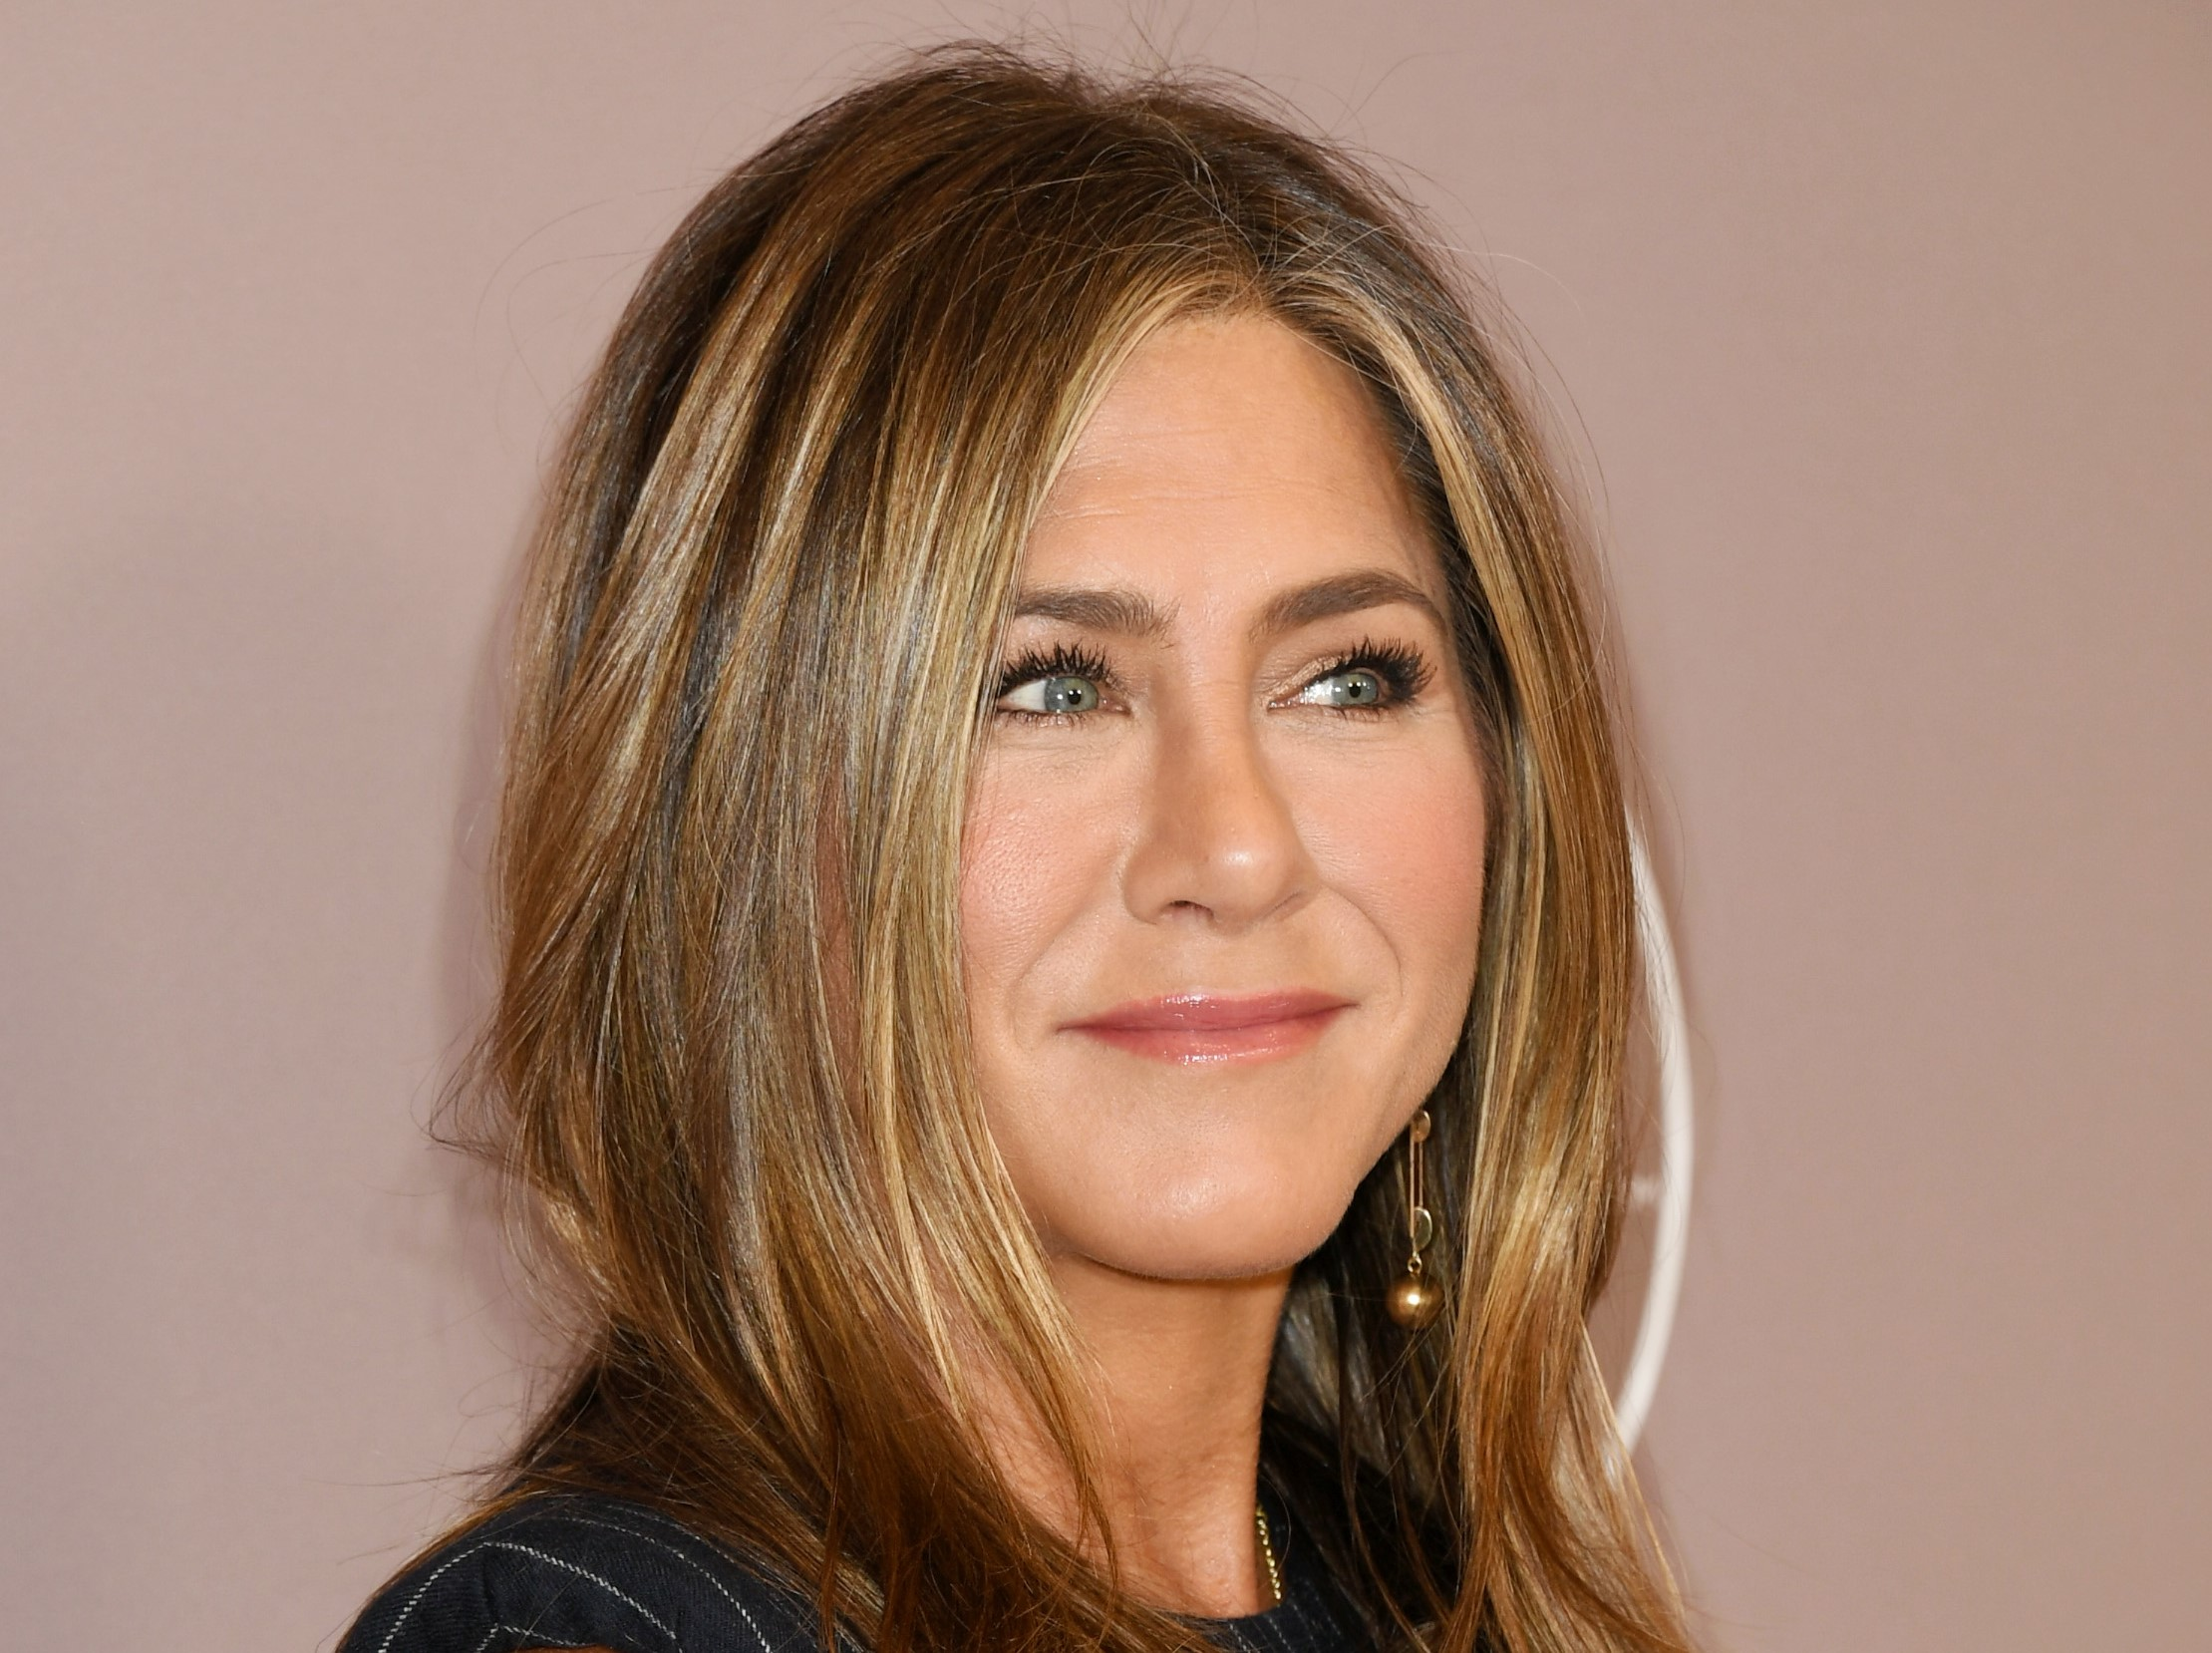 Jennifer Aniston attends Variety's 2019 Power Of Women: Los Angeles last week in Beverly Hills, California.